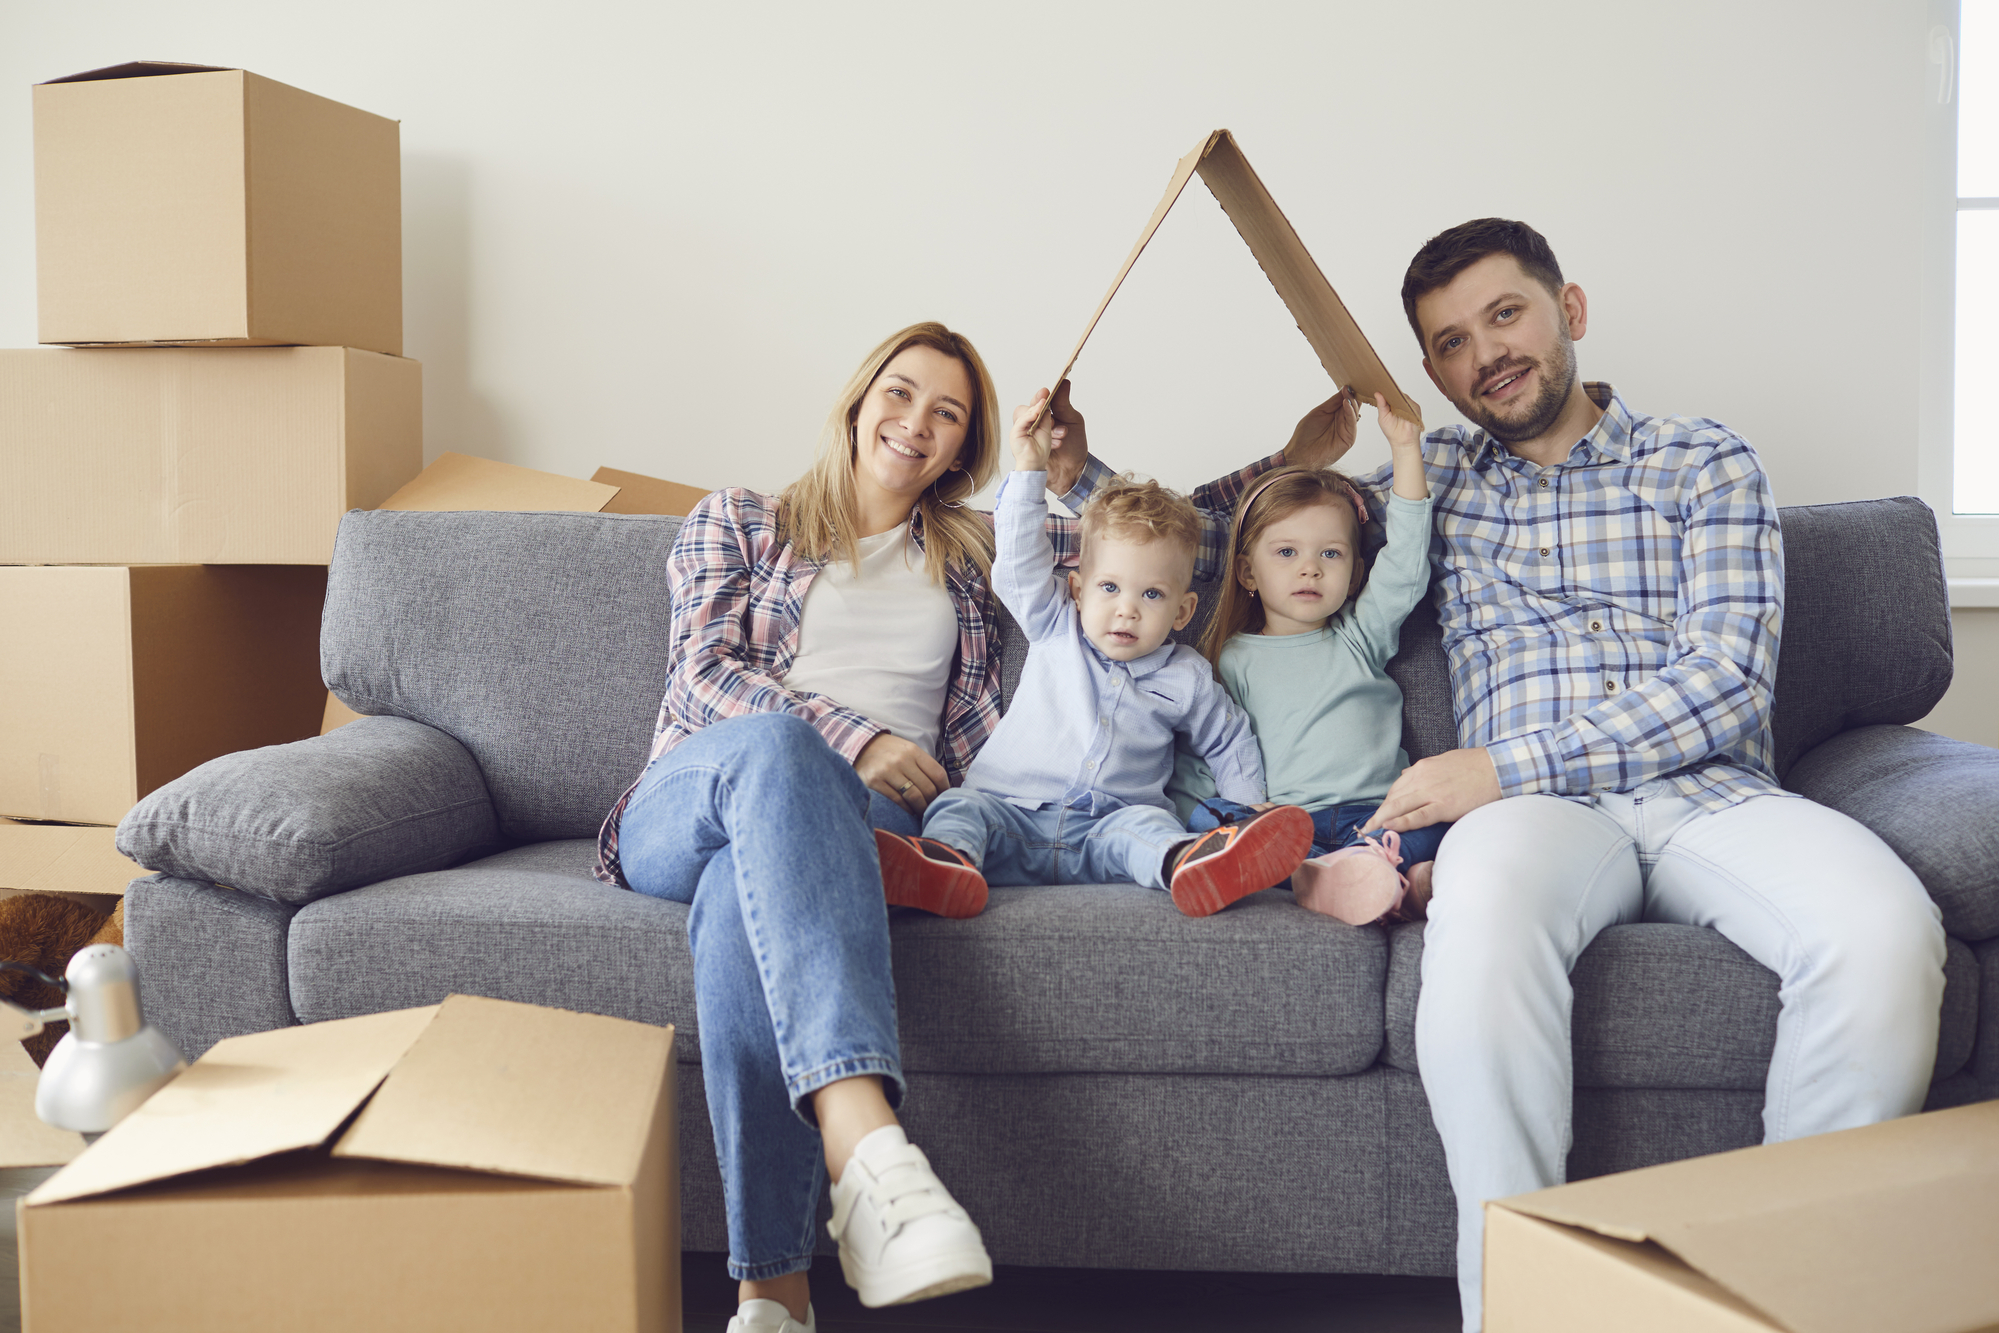 Happy family smiling at a new house moving